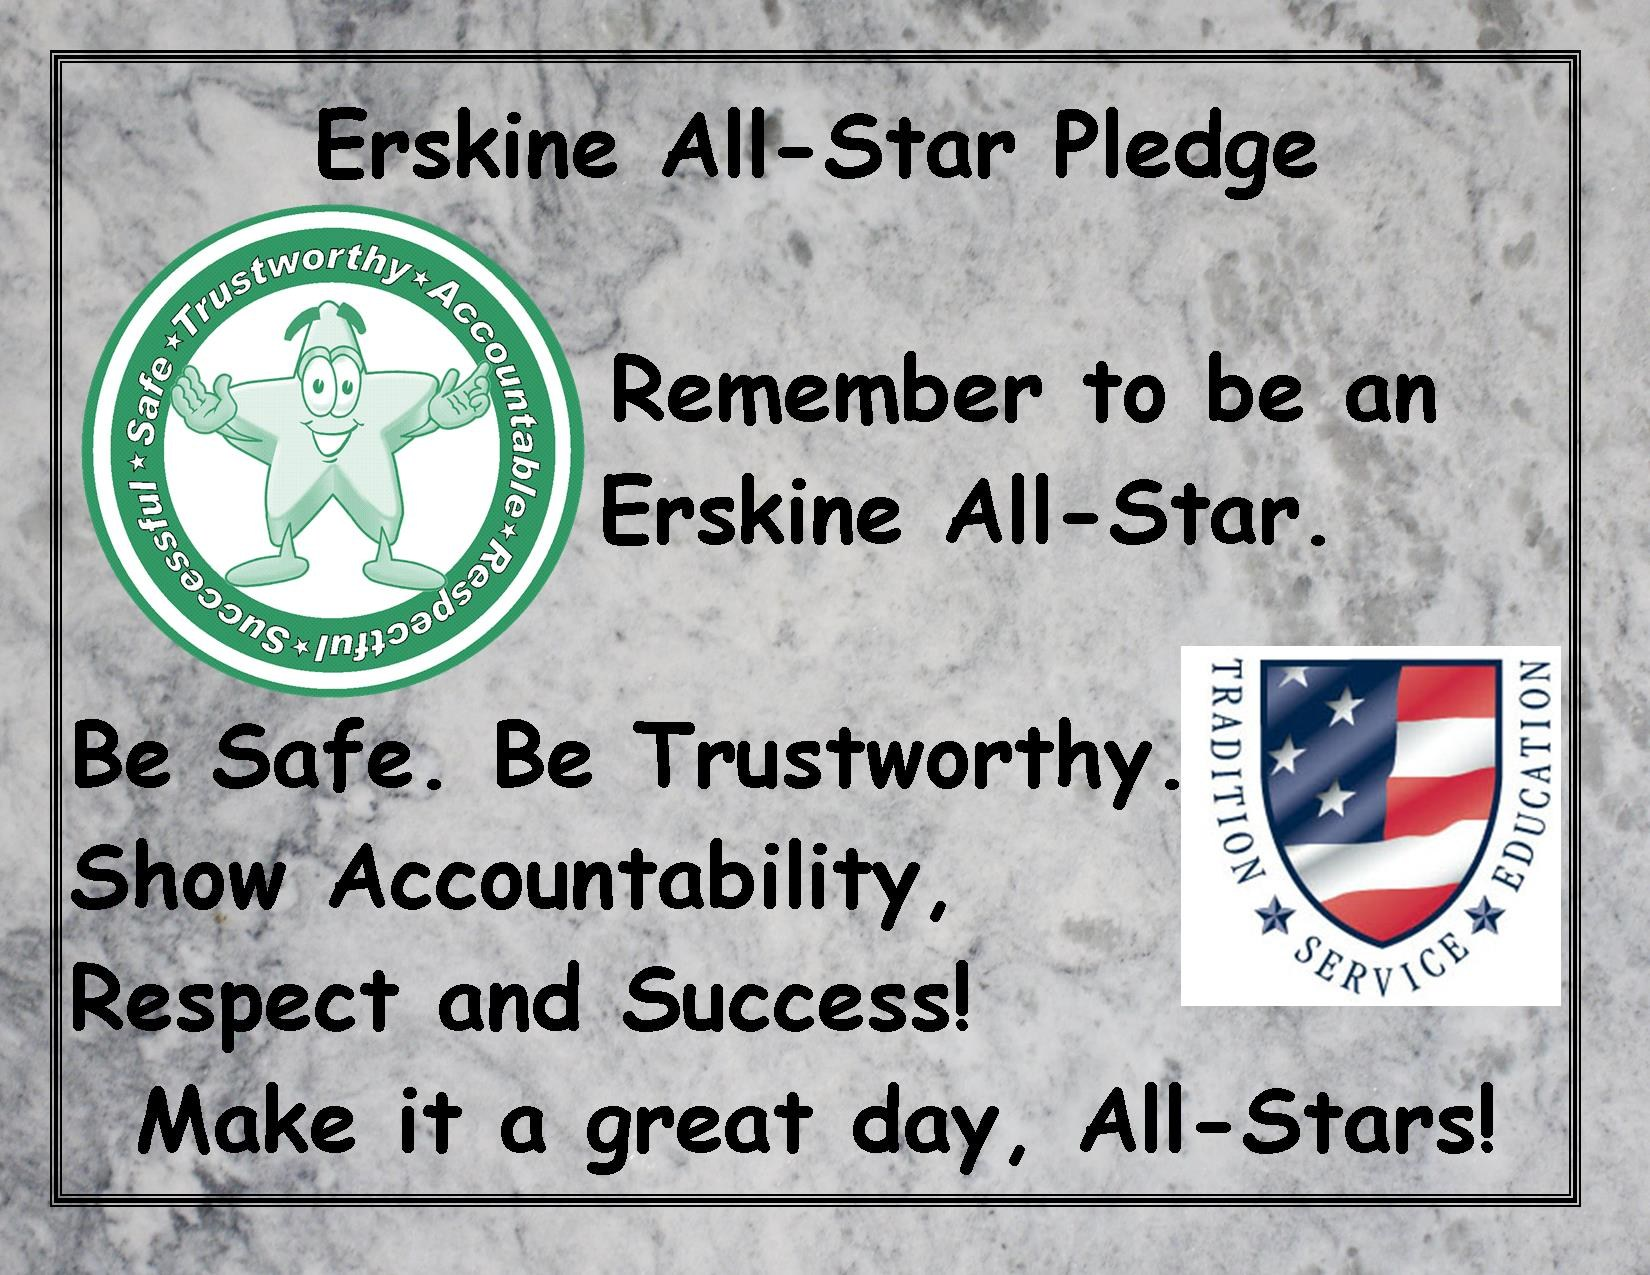 Erskine All-Star Pledge